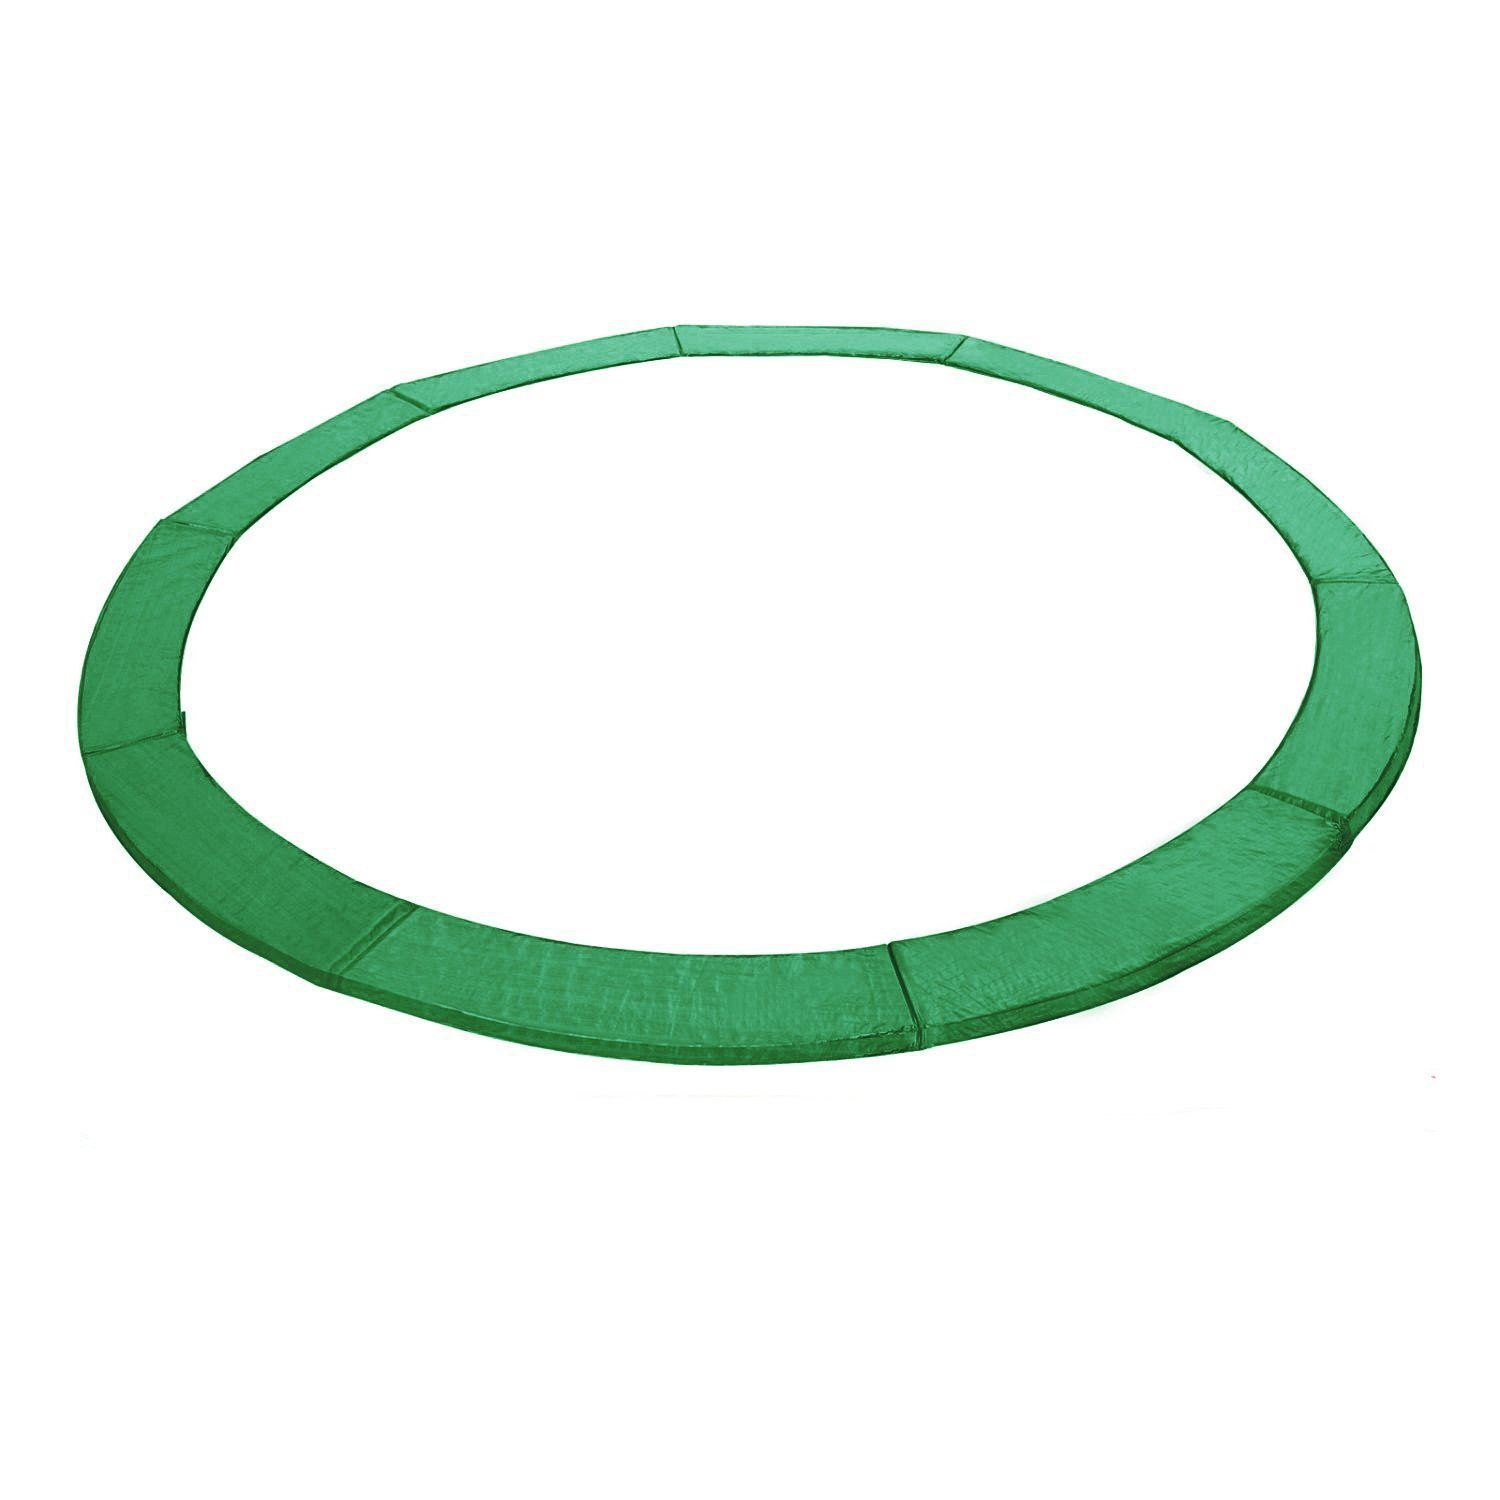 Exacme Trampoline Replacement Safety Pad Frame Spring Round Cover, Green, 10', Green, 10'